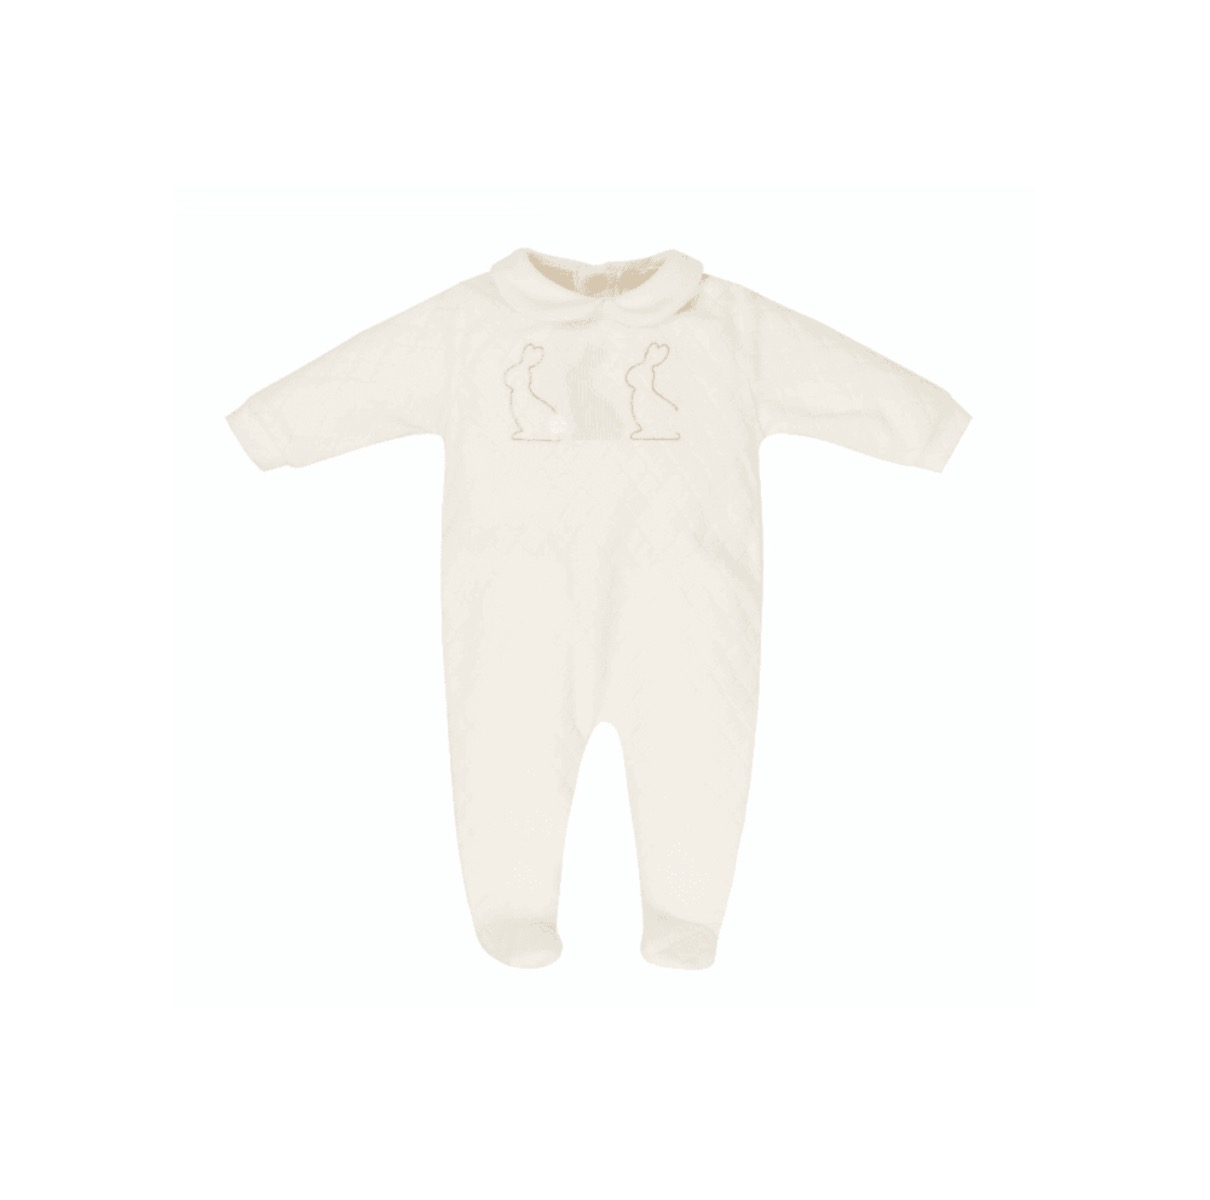 Everything Must Change Cream Babygrow BQ6337